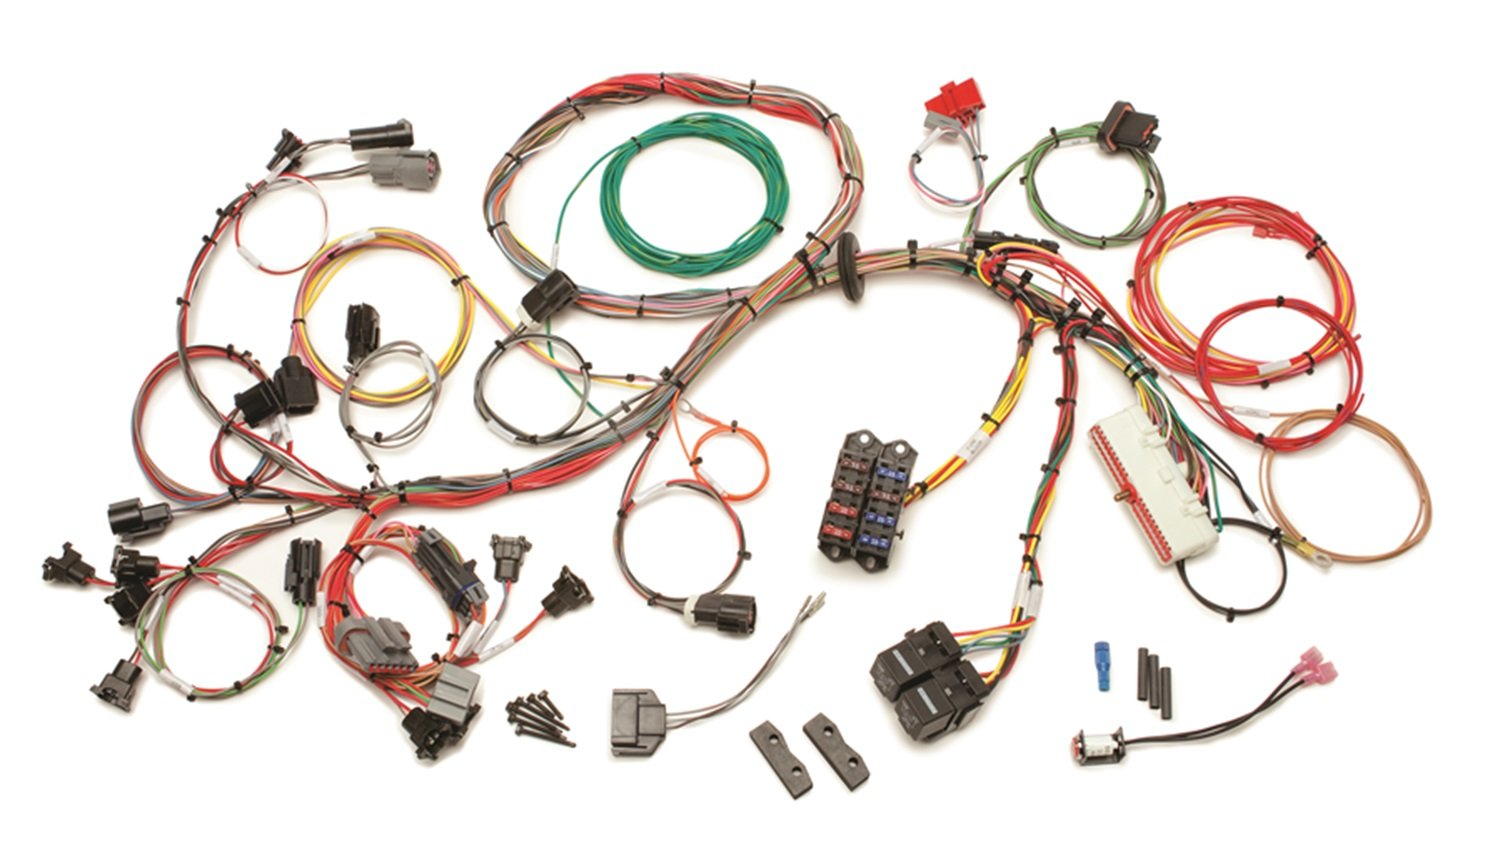 71UX1IBfleL._SL1500_ amazon com painless 60510 5 0l wiring harness automotive electrical wiring harness at bayanpartner.co